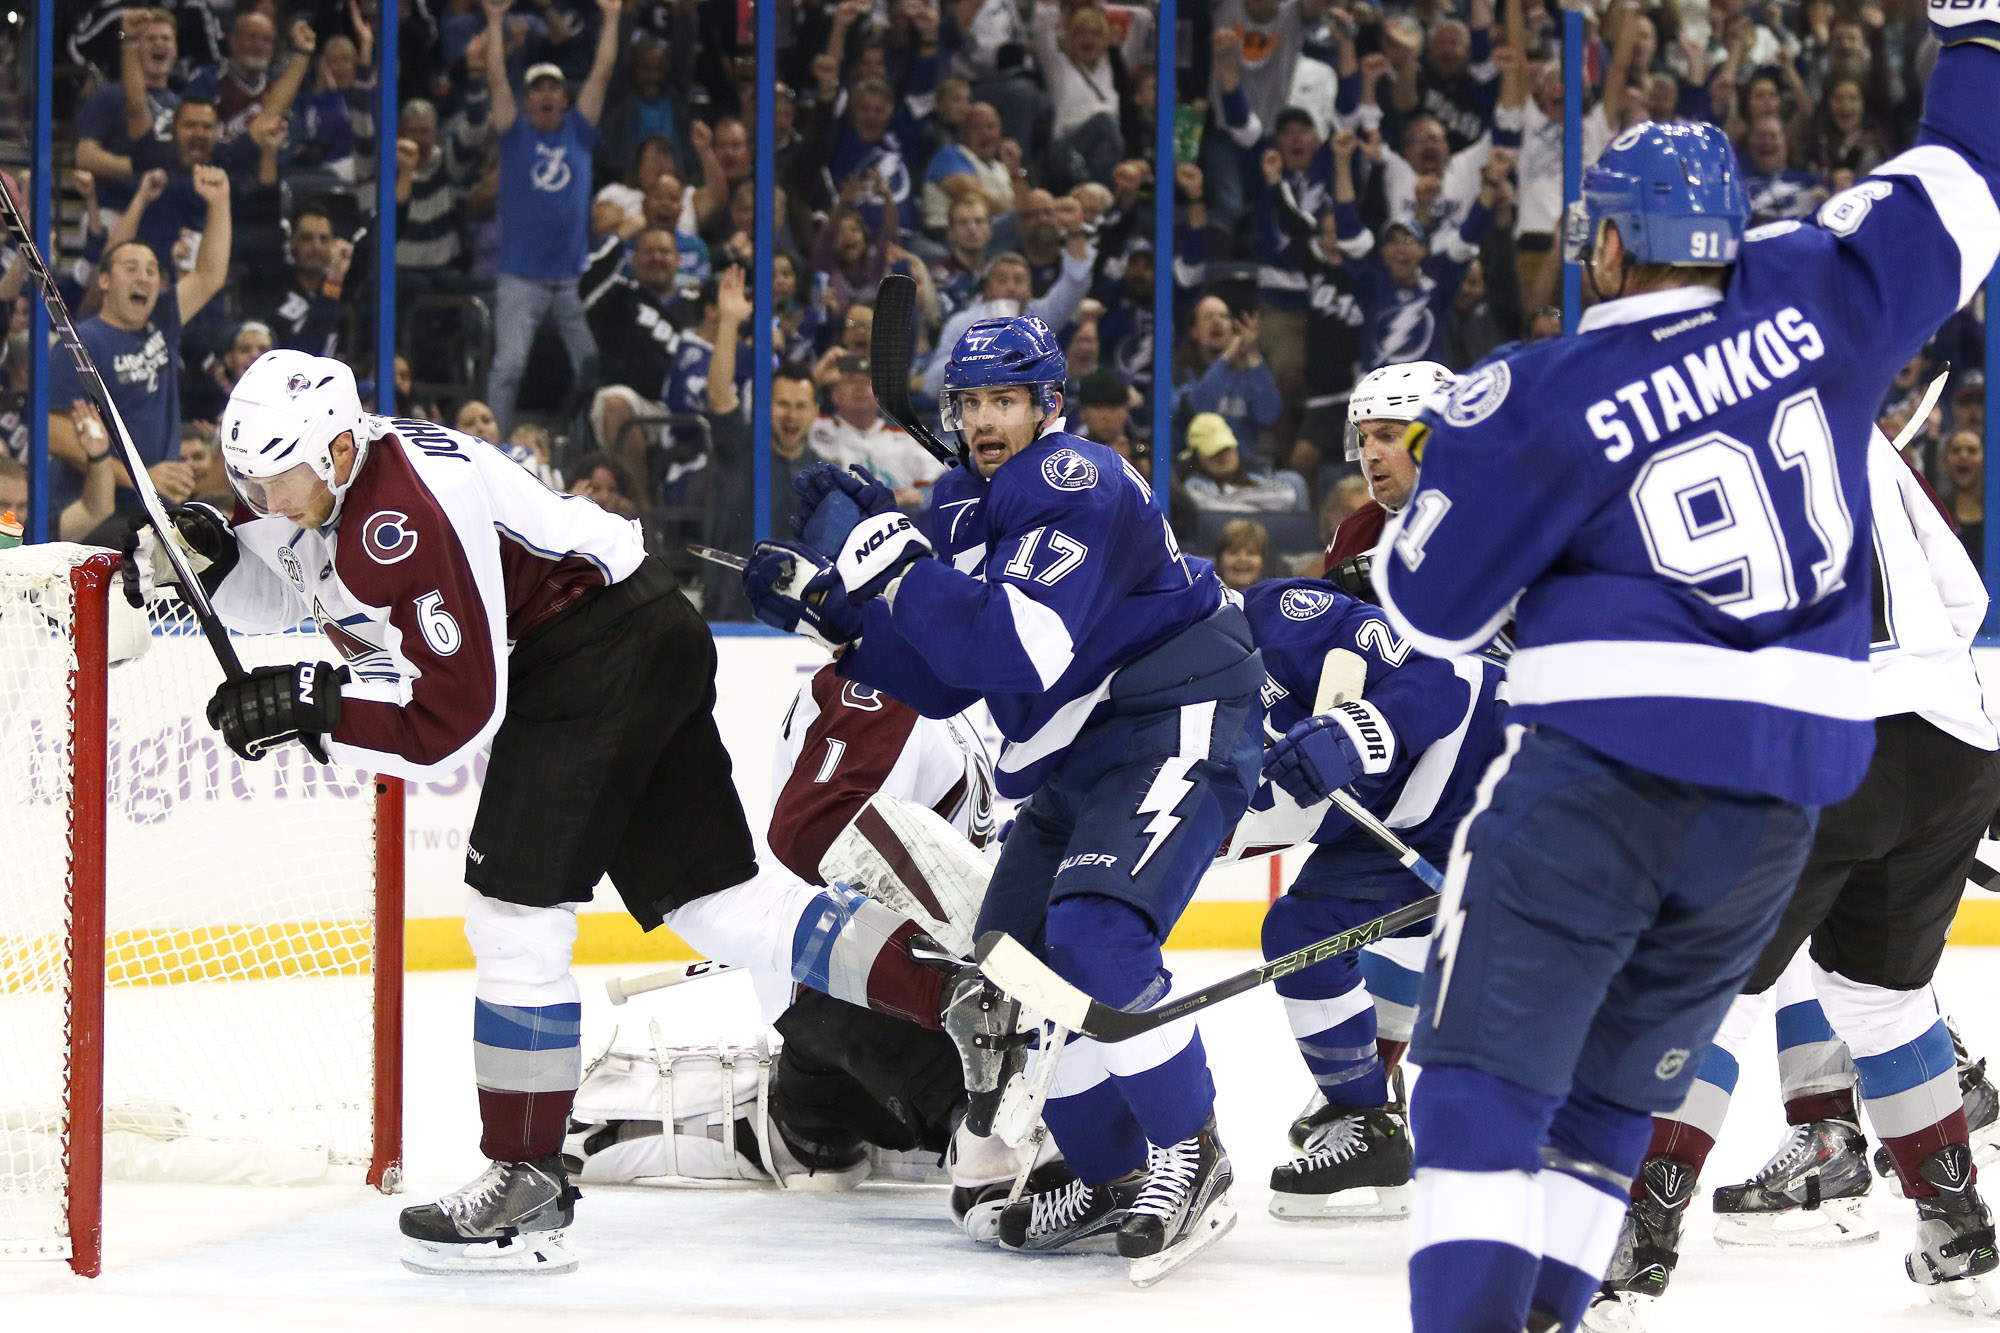 Killorn reacts after sneaking the puck past Varlamov in the second period./ANDREW J. KRAMER